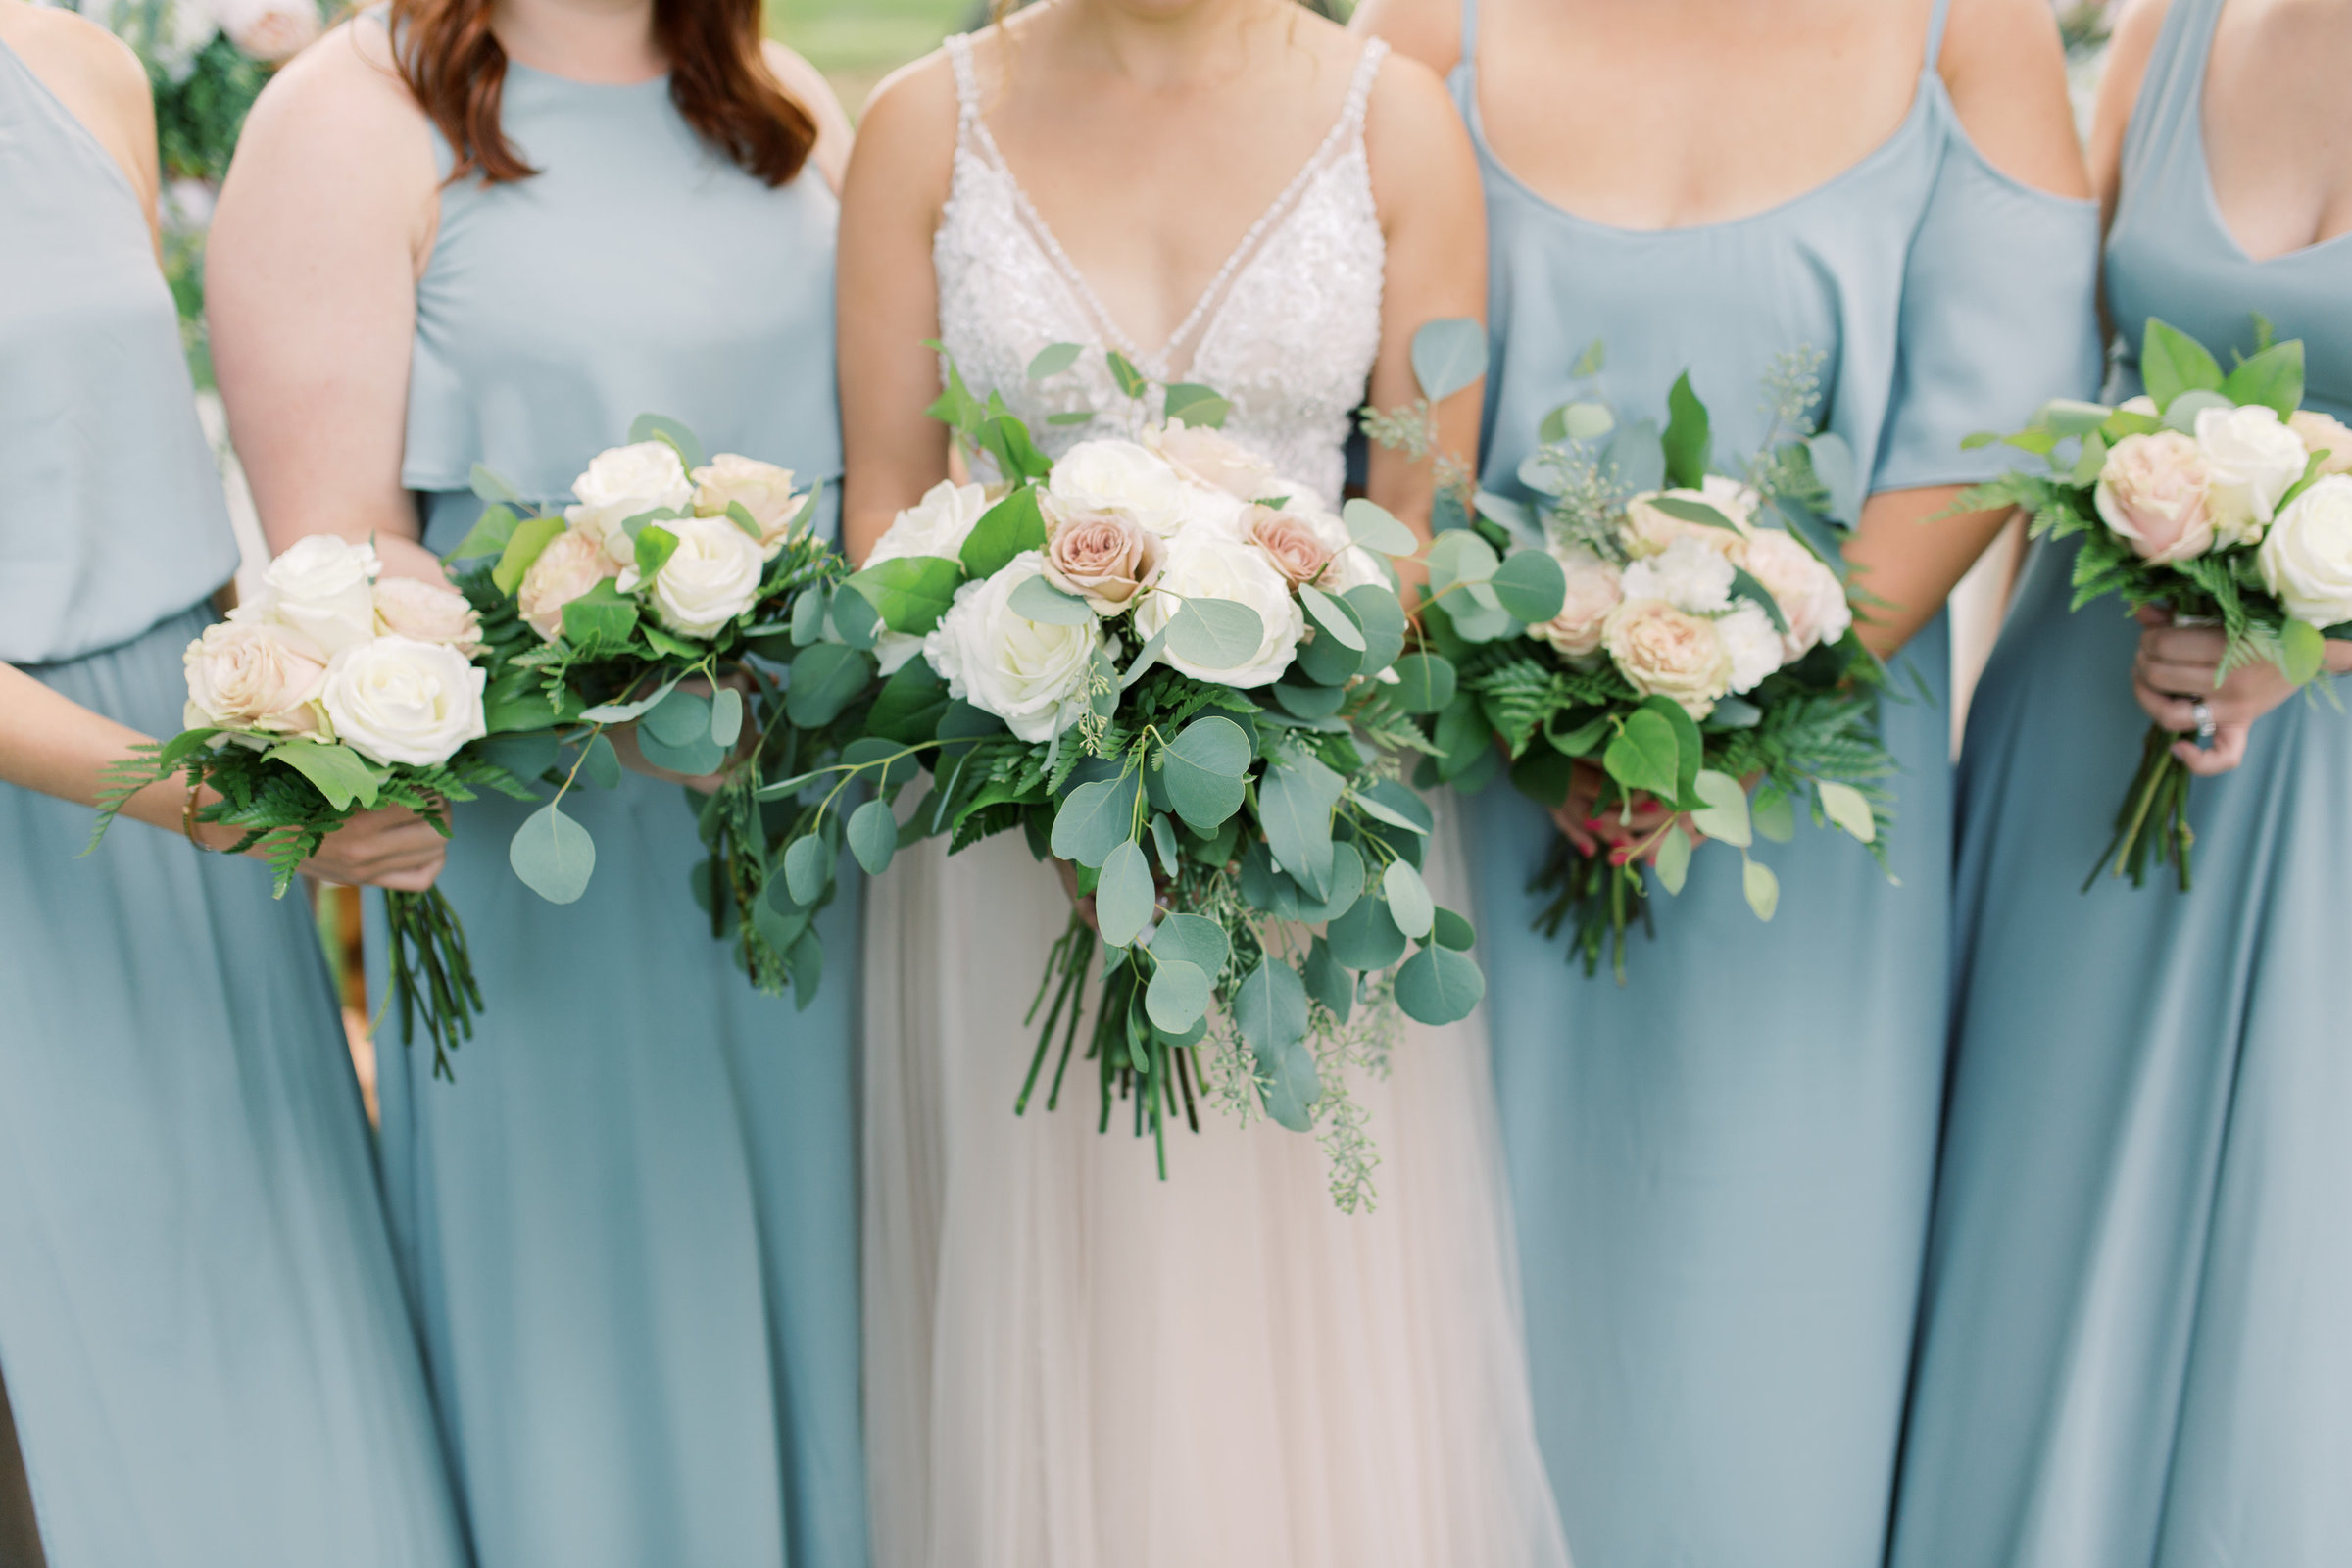 Bridesmaids in blue dresses hold their white and pink bouquets, photo by Wedding Photographer in Grand Rapids, Cynthia Boyle